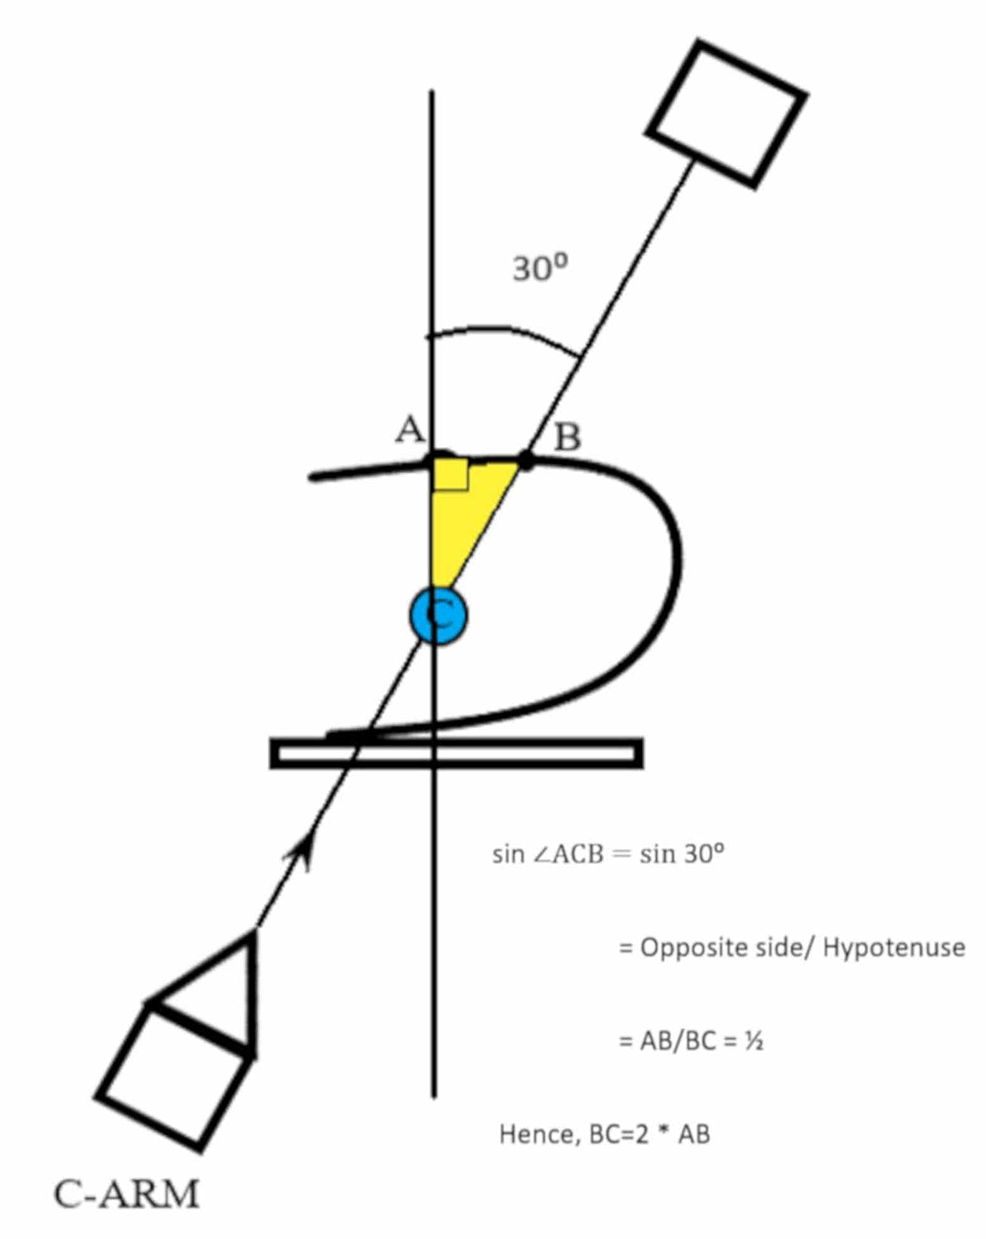 With-the-fluoroscopy-at-thirty-degrees,-point-B-is-marked-on-the-skin-overlying-the-target-calyx-C-forming-a-right-angled-triangle